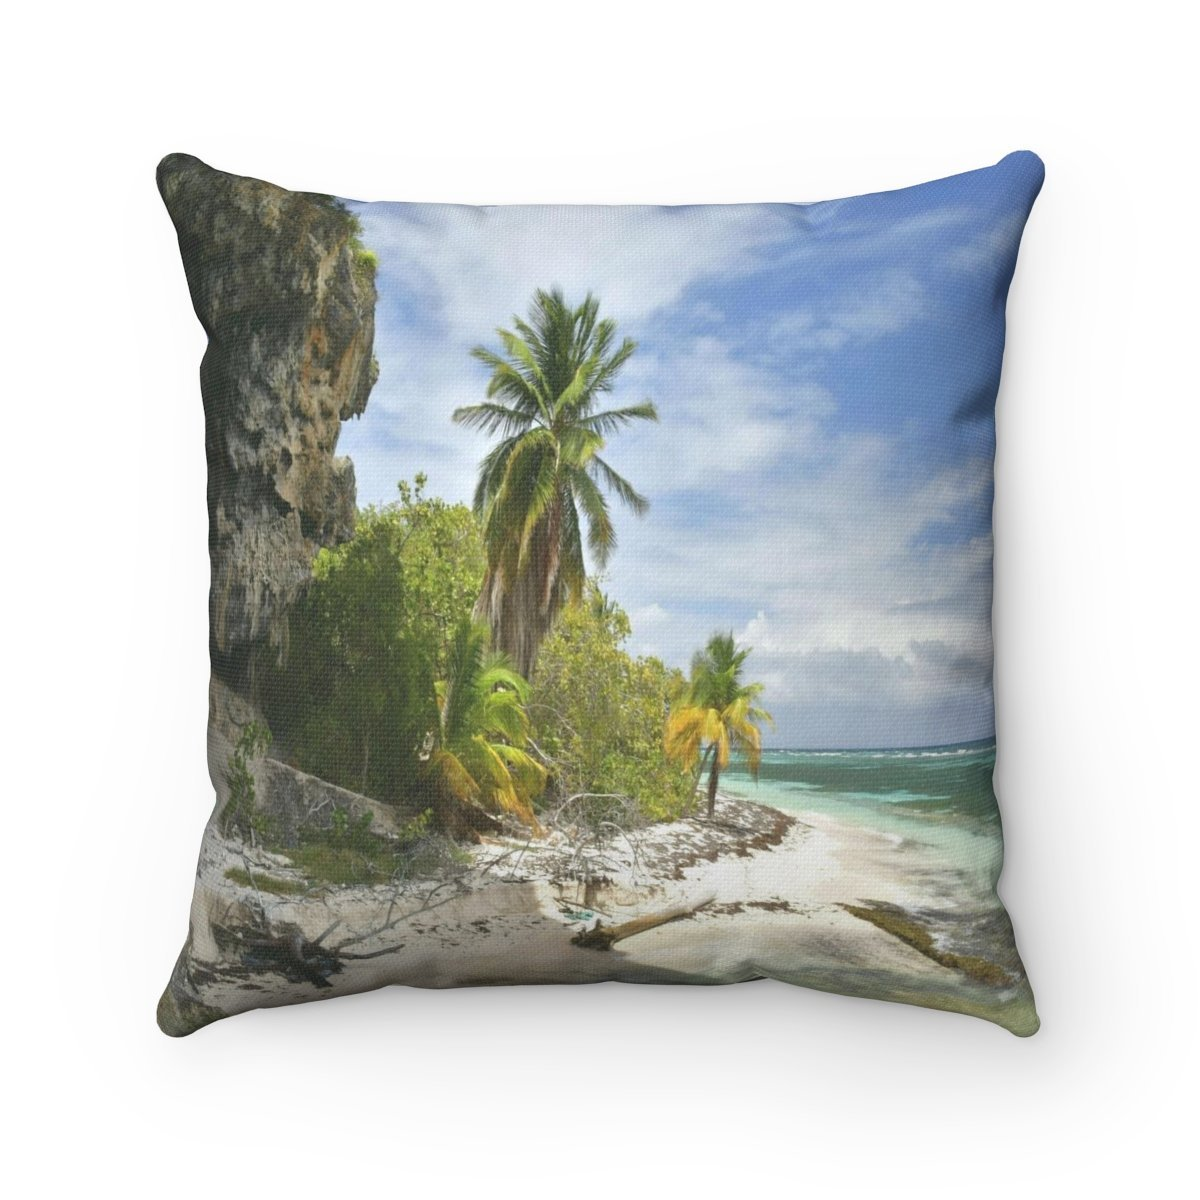 Remote Mona Island Pajaros Beach edge next to cave - Spun Polyester Square Pillow (bundle) - SingleClick.store